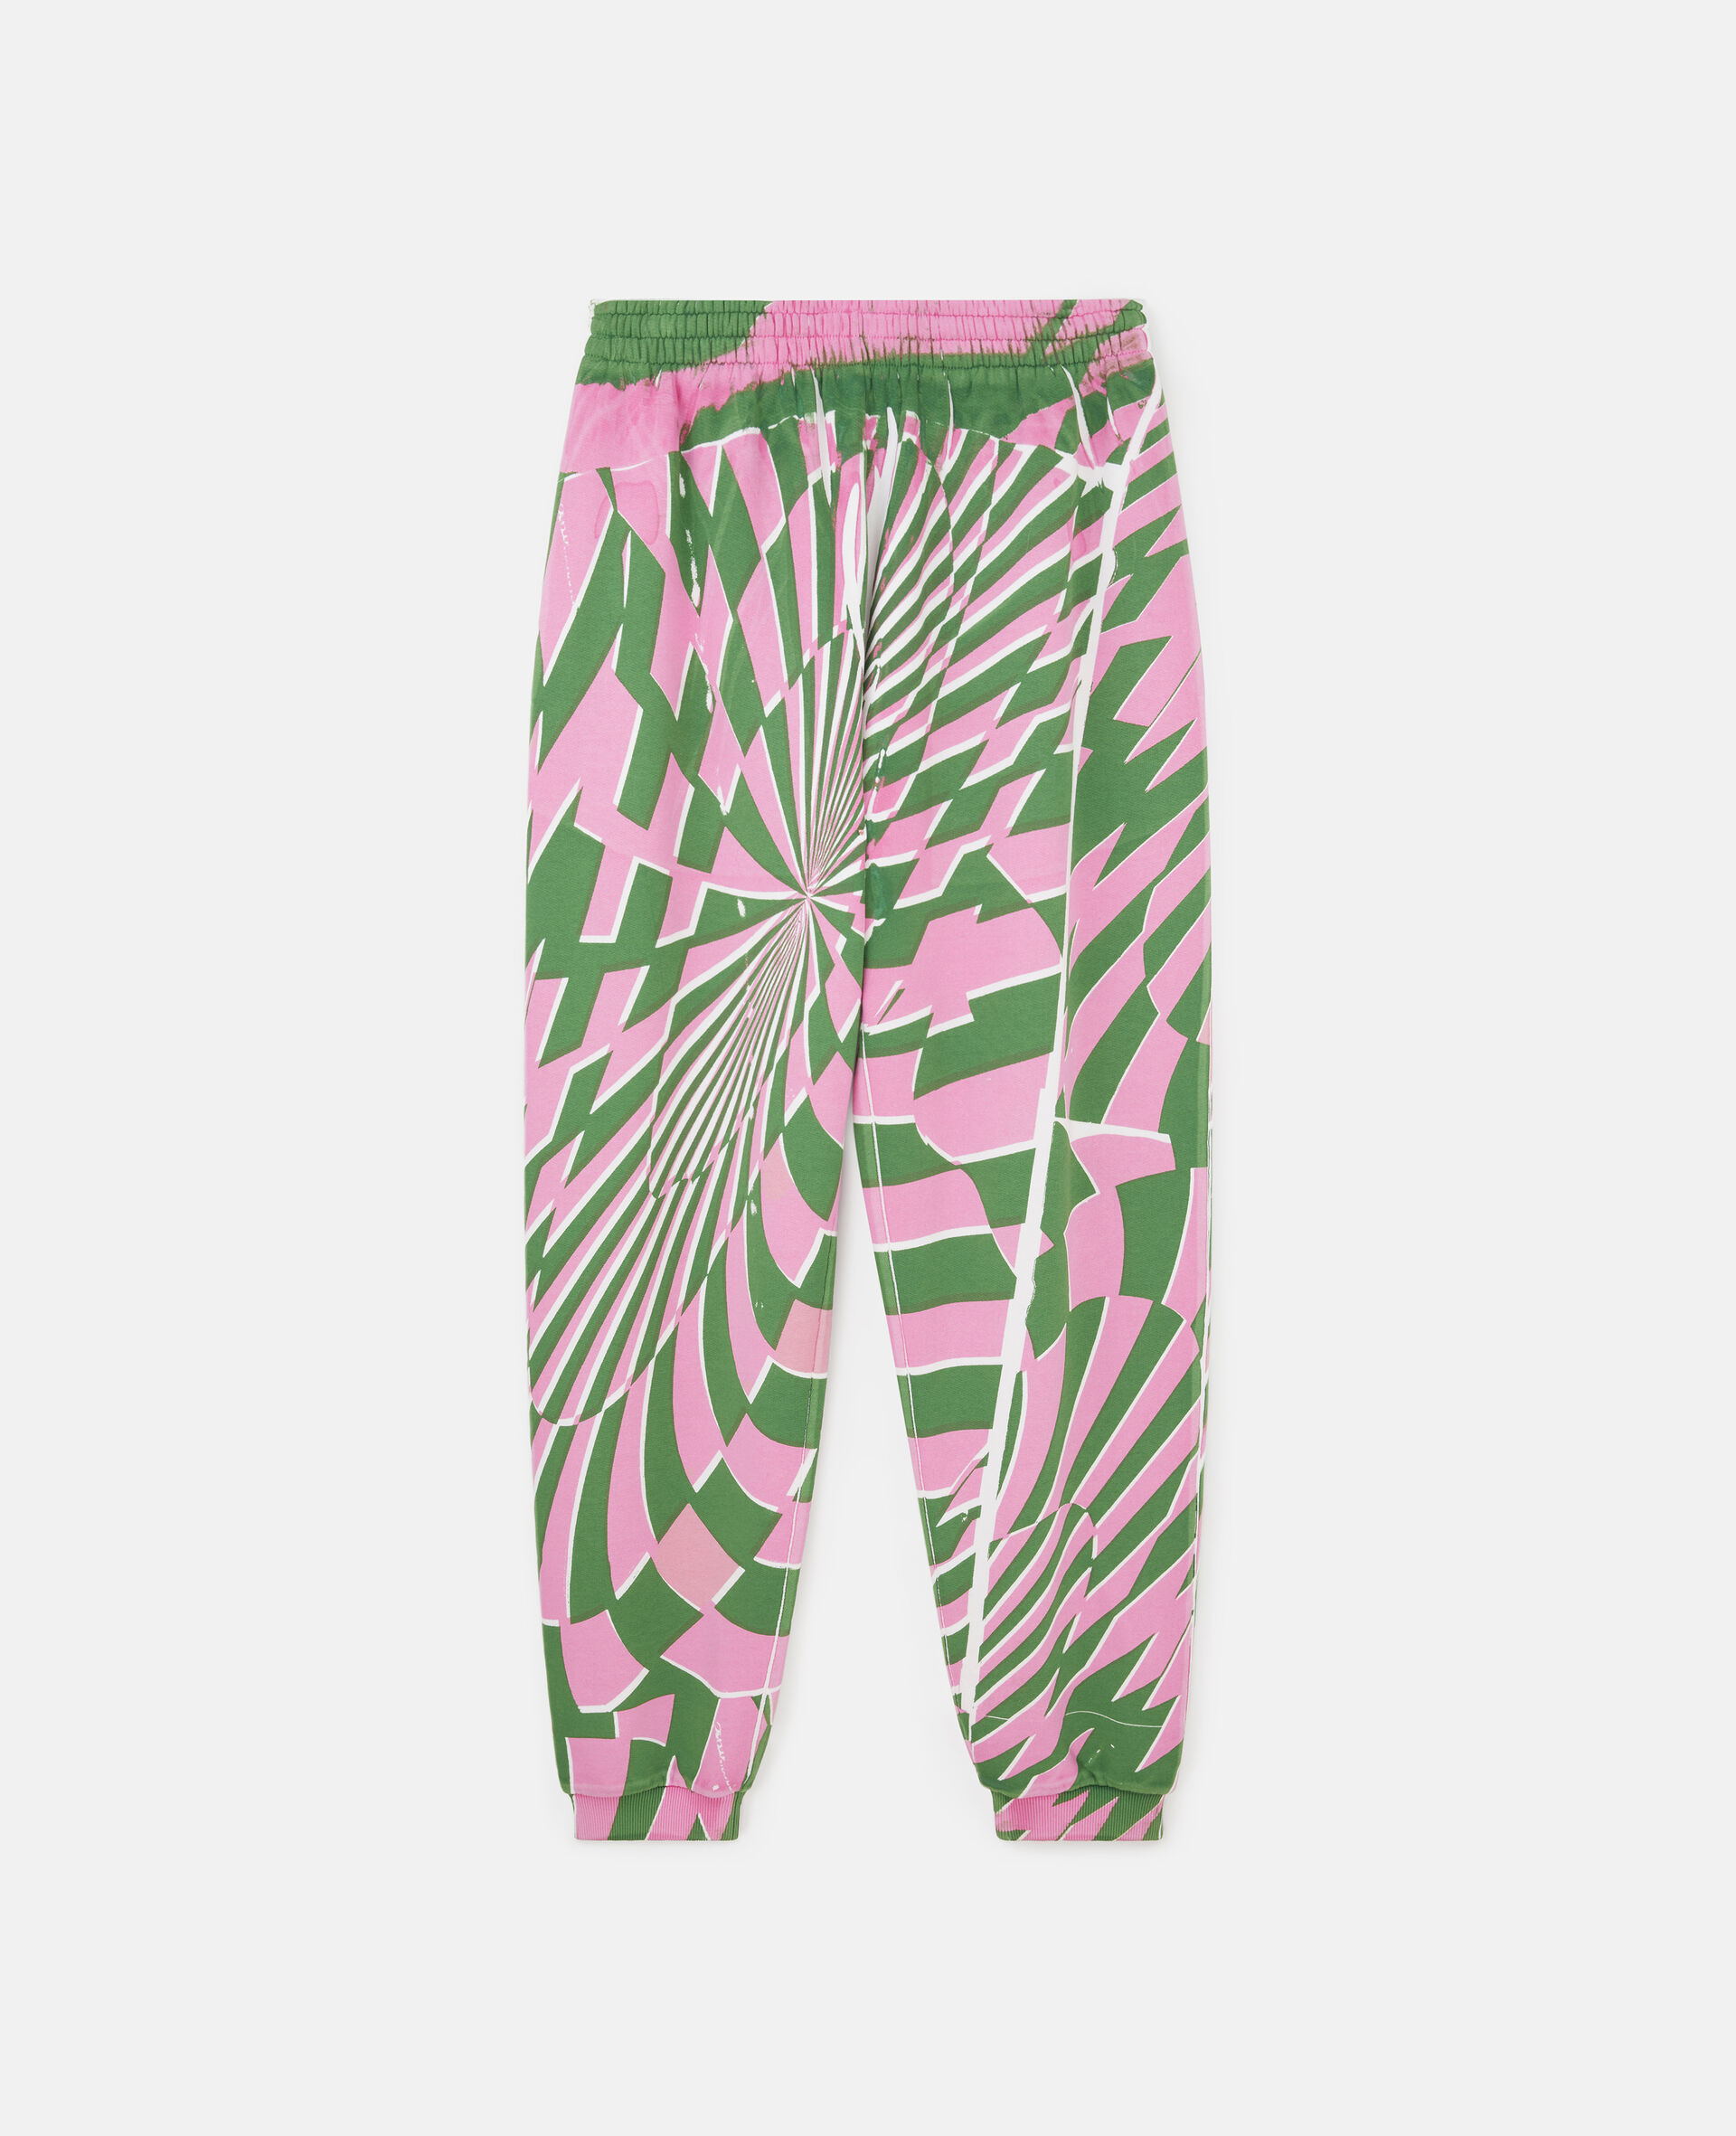 Ed Curtis Psychedelic Sweatpants-Multicolour-large image number 0